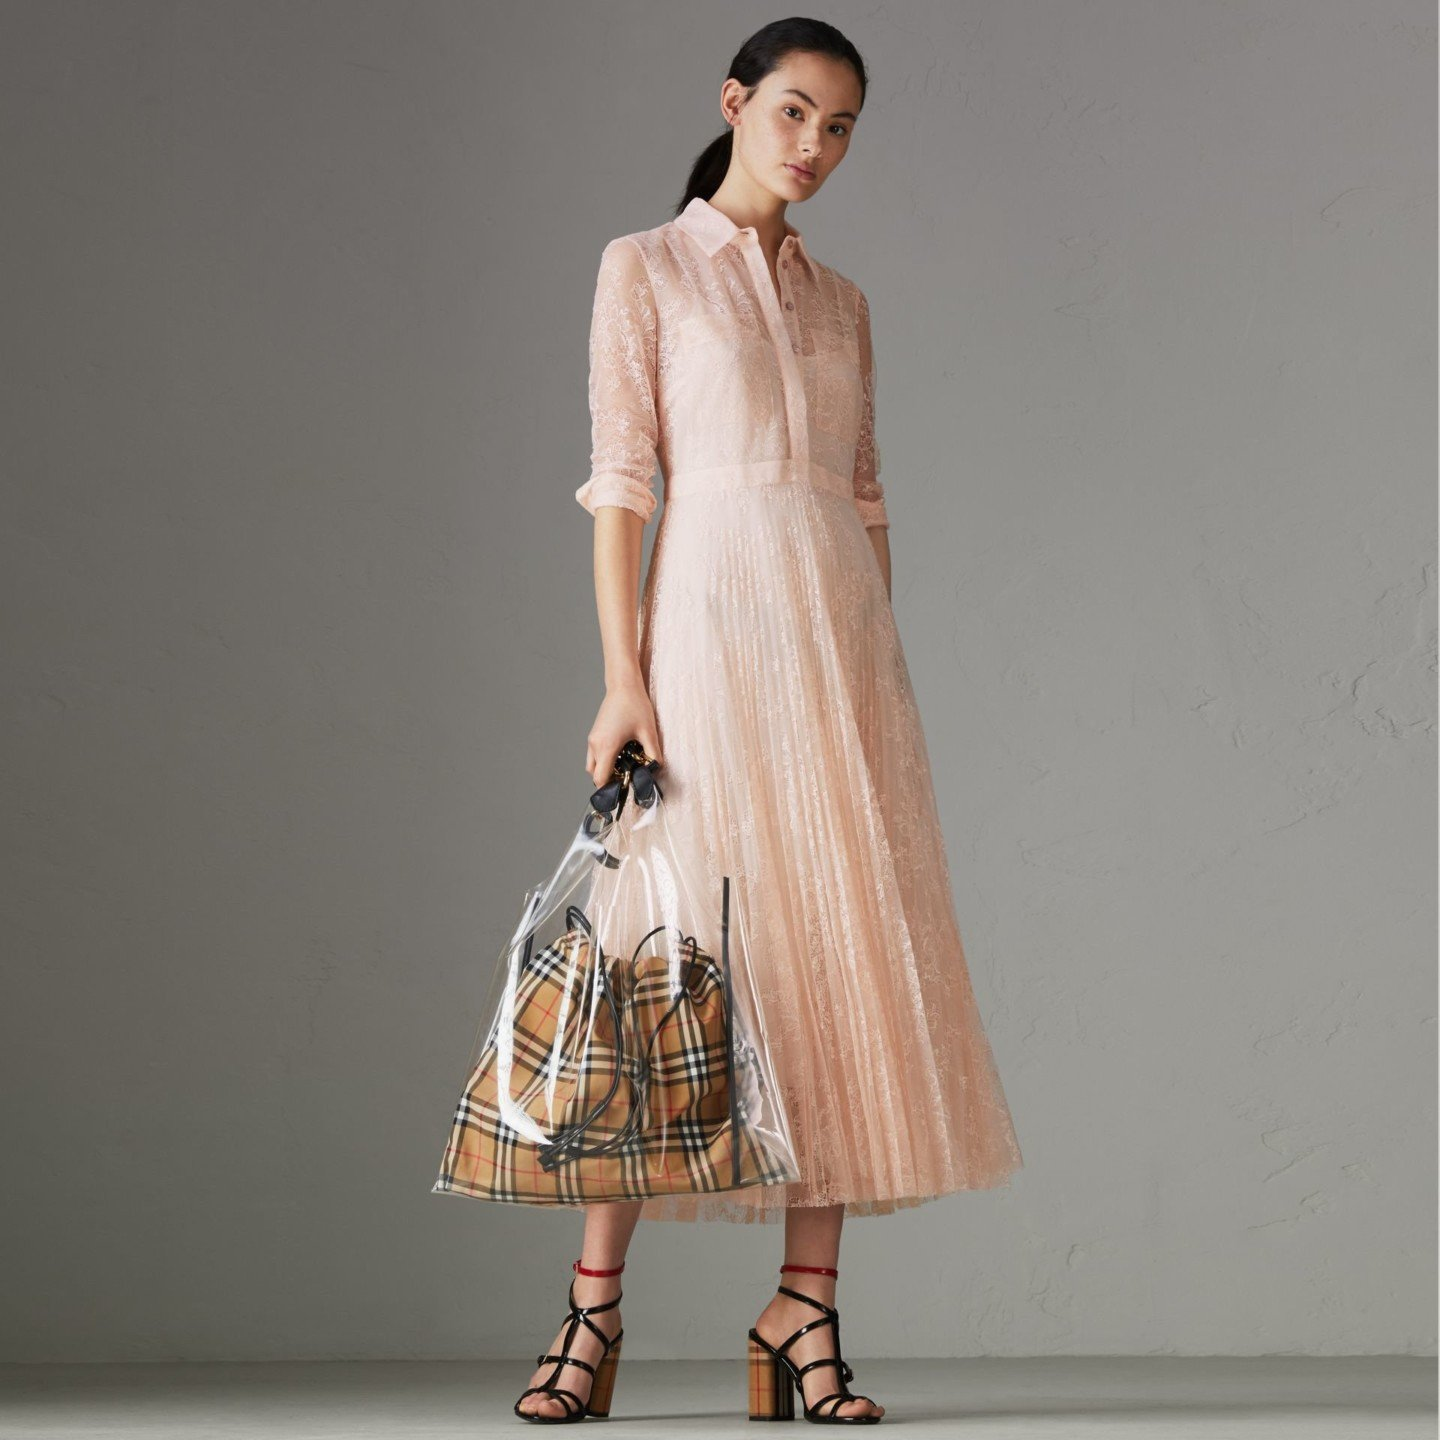 BURBERRY Pleated Lace Powder Pink Dress